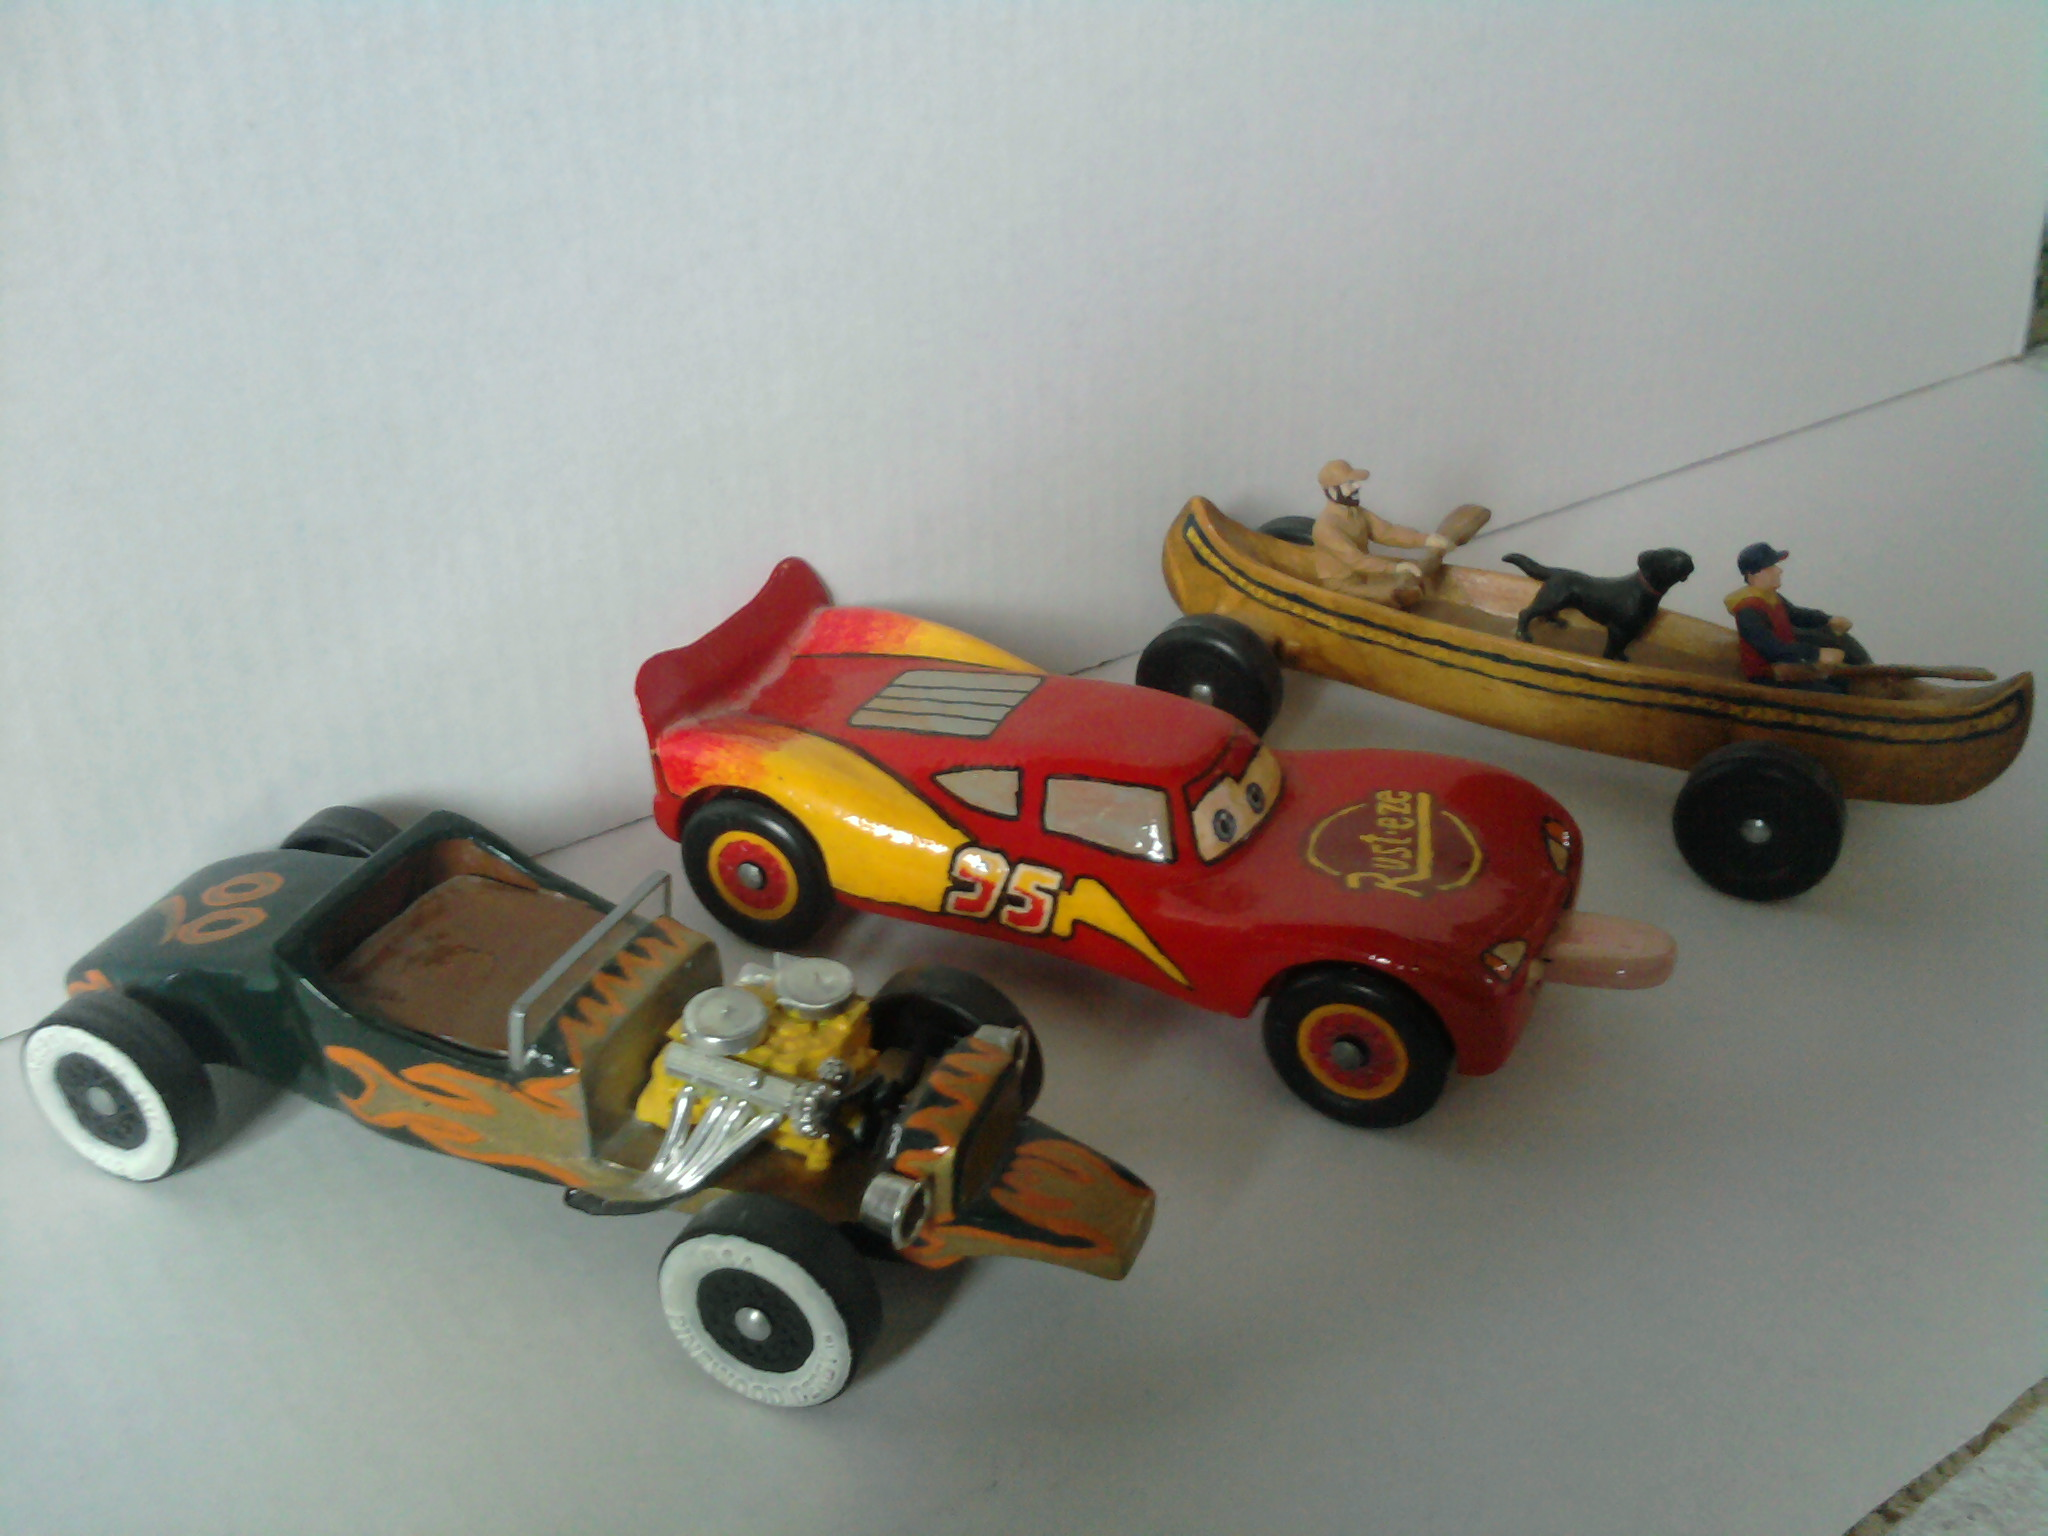 Whats Your Favorite Hot Wheels Car of All Time